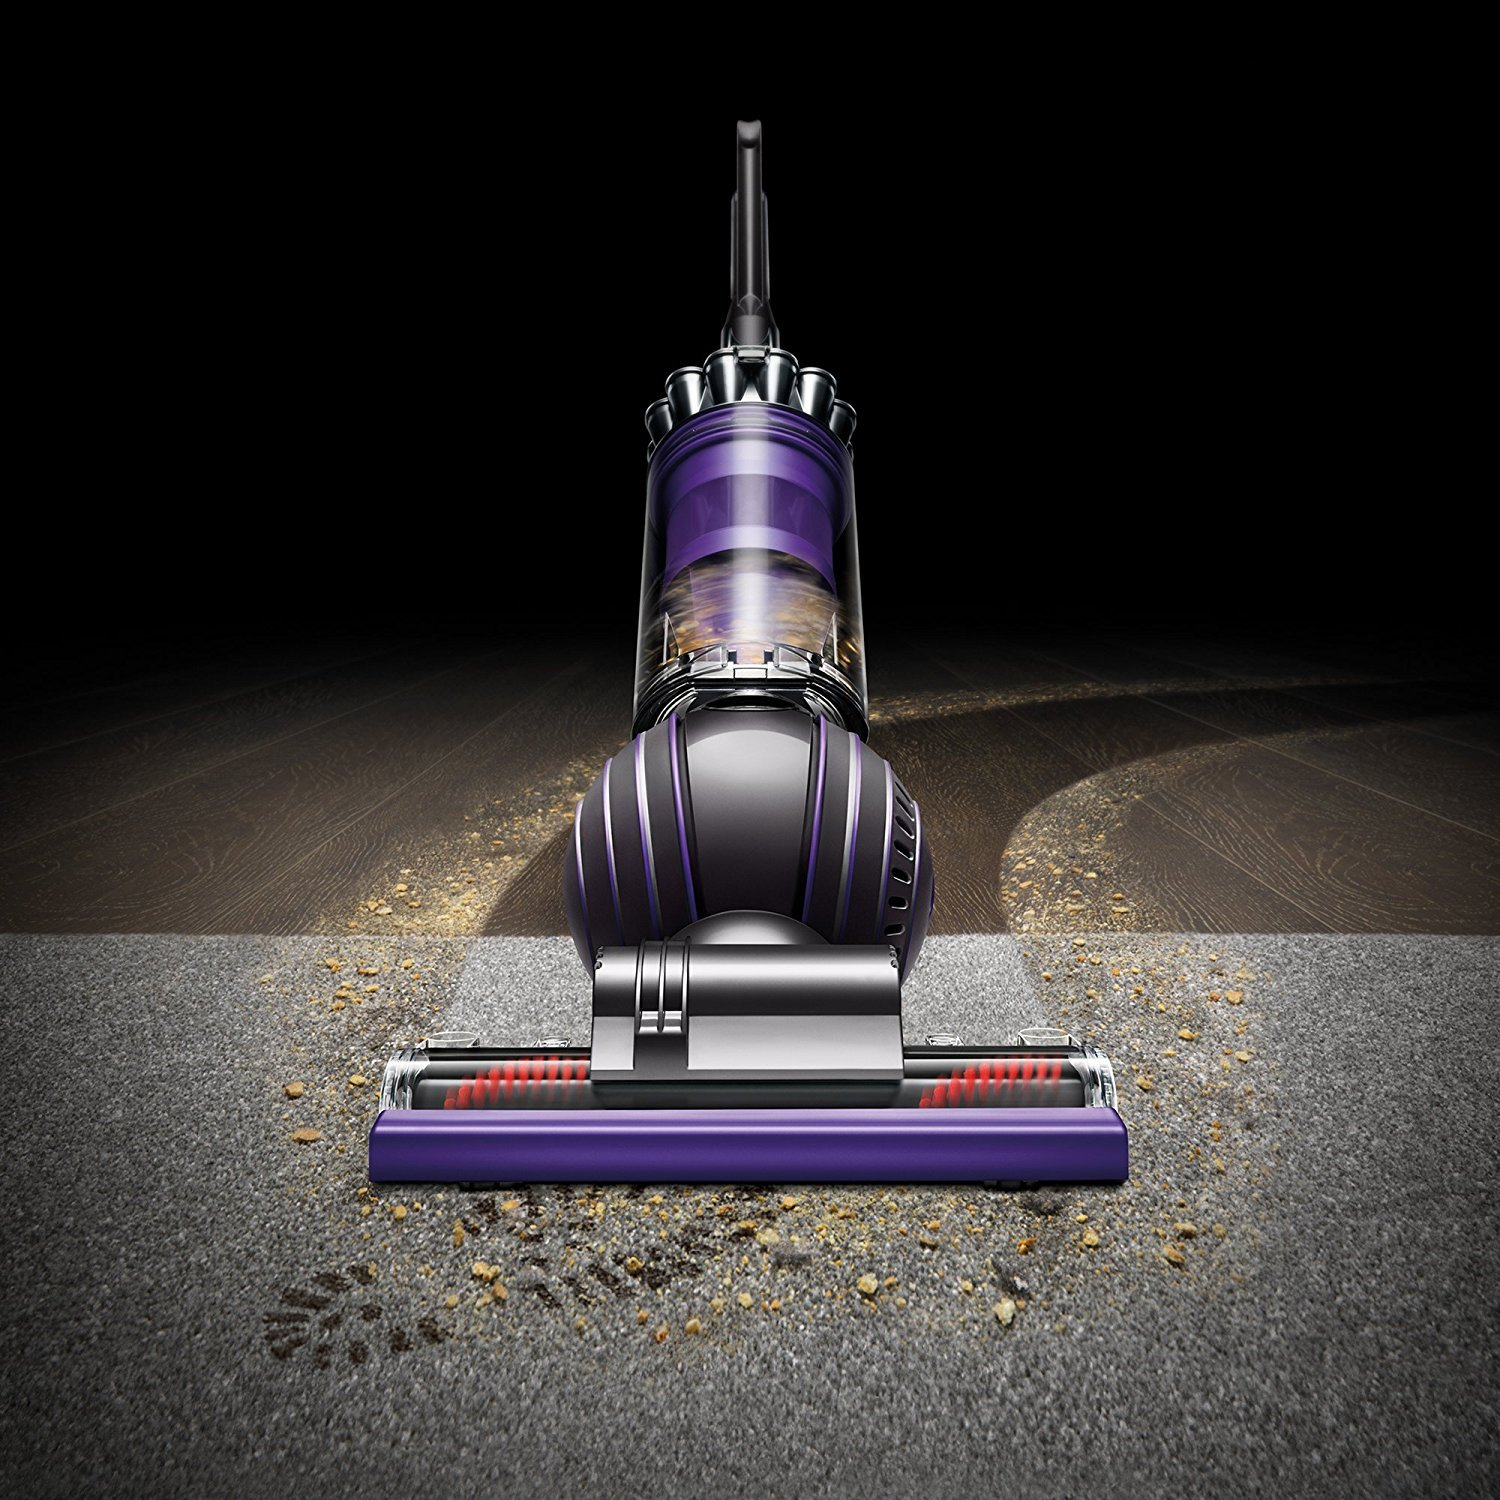 Dyson Ball Animal 2 Upright Vacuum, Iron/Purple (Certified Refurbished) by Dyson (Image #3)